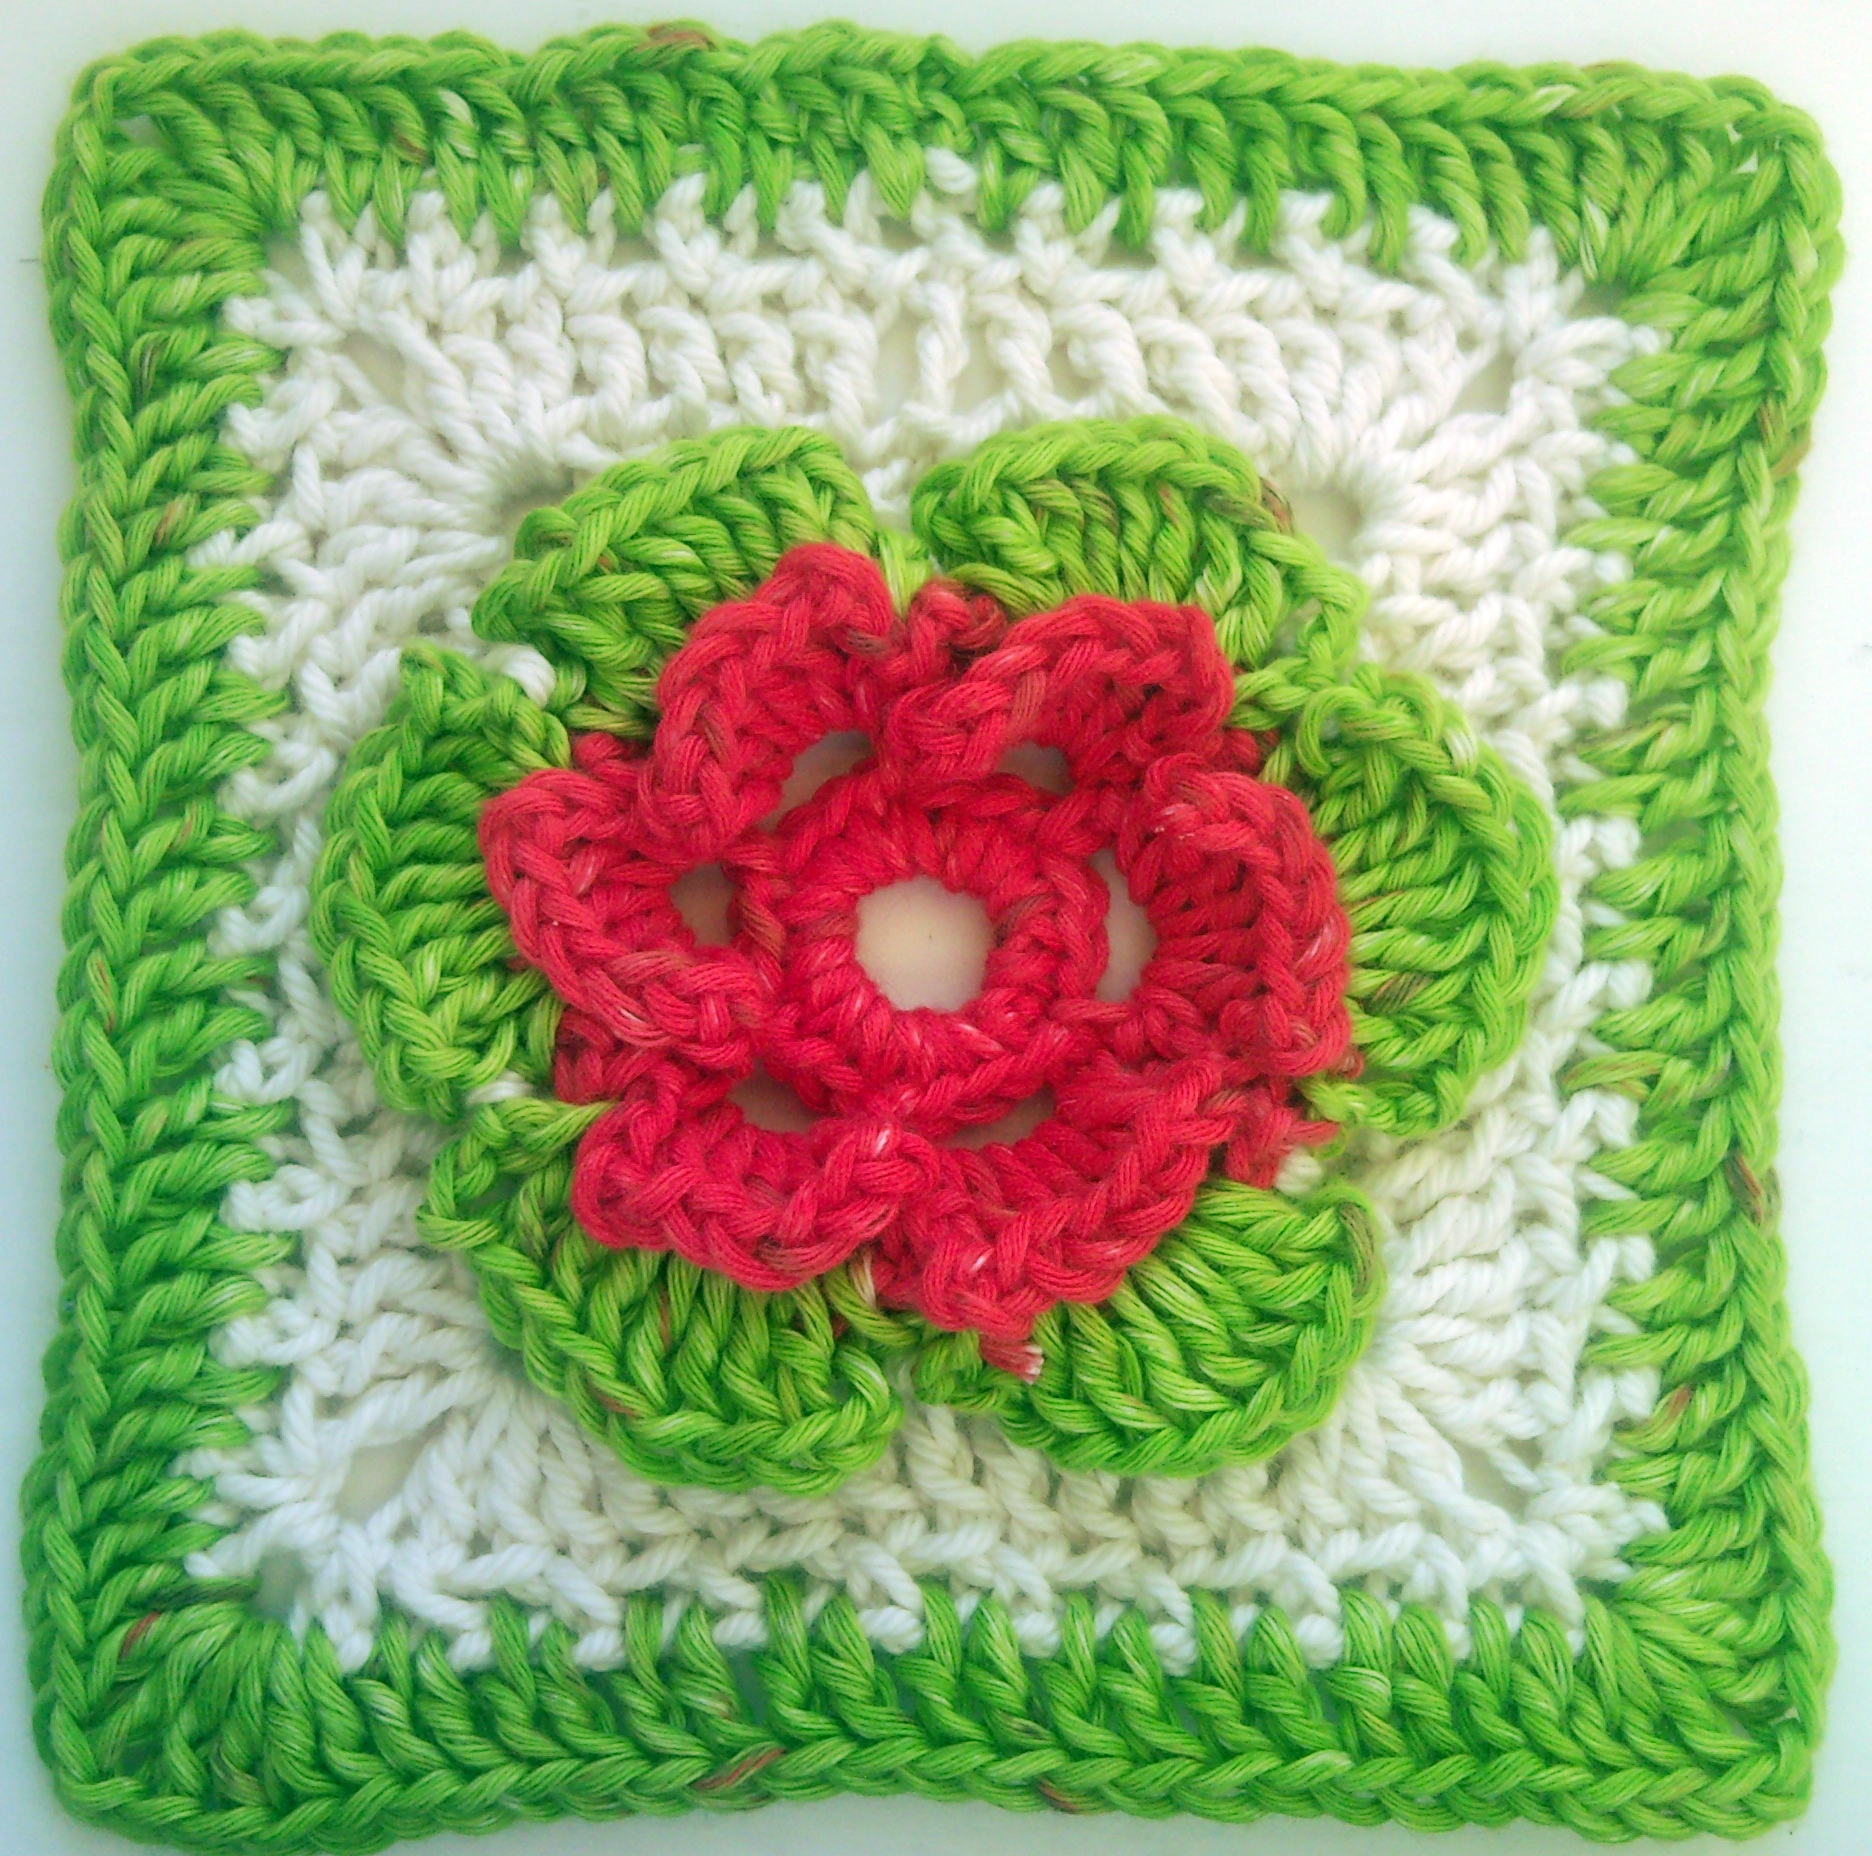 Crochet Pattern Granny Square With Flower : Pics Photos - Flower Granny Square Free Crochet Patterns ...